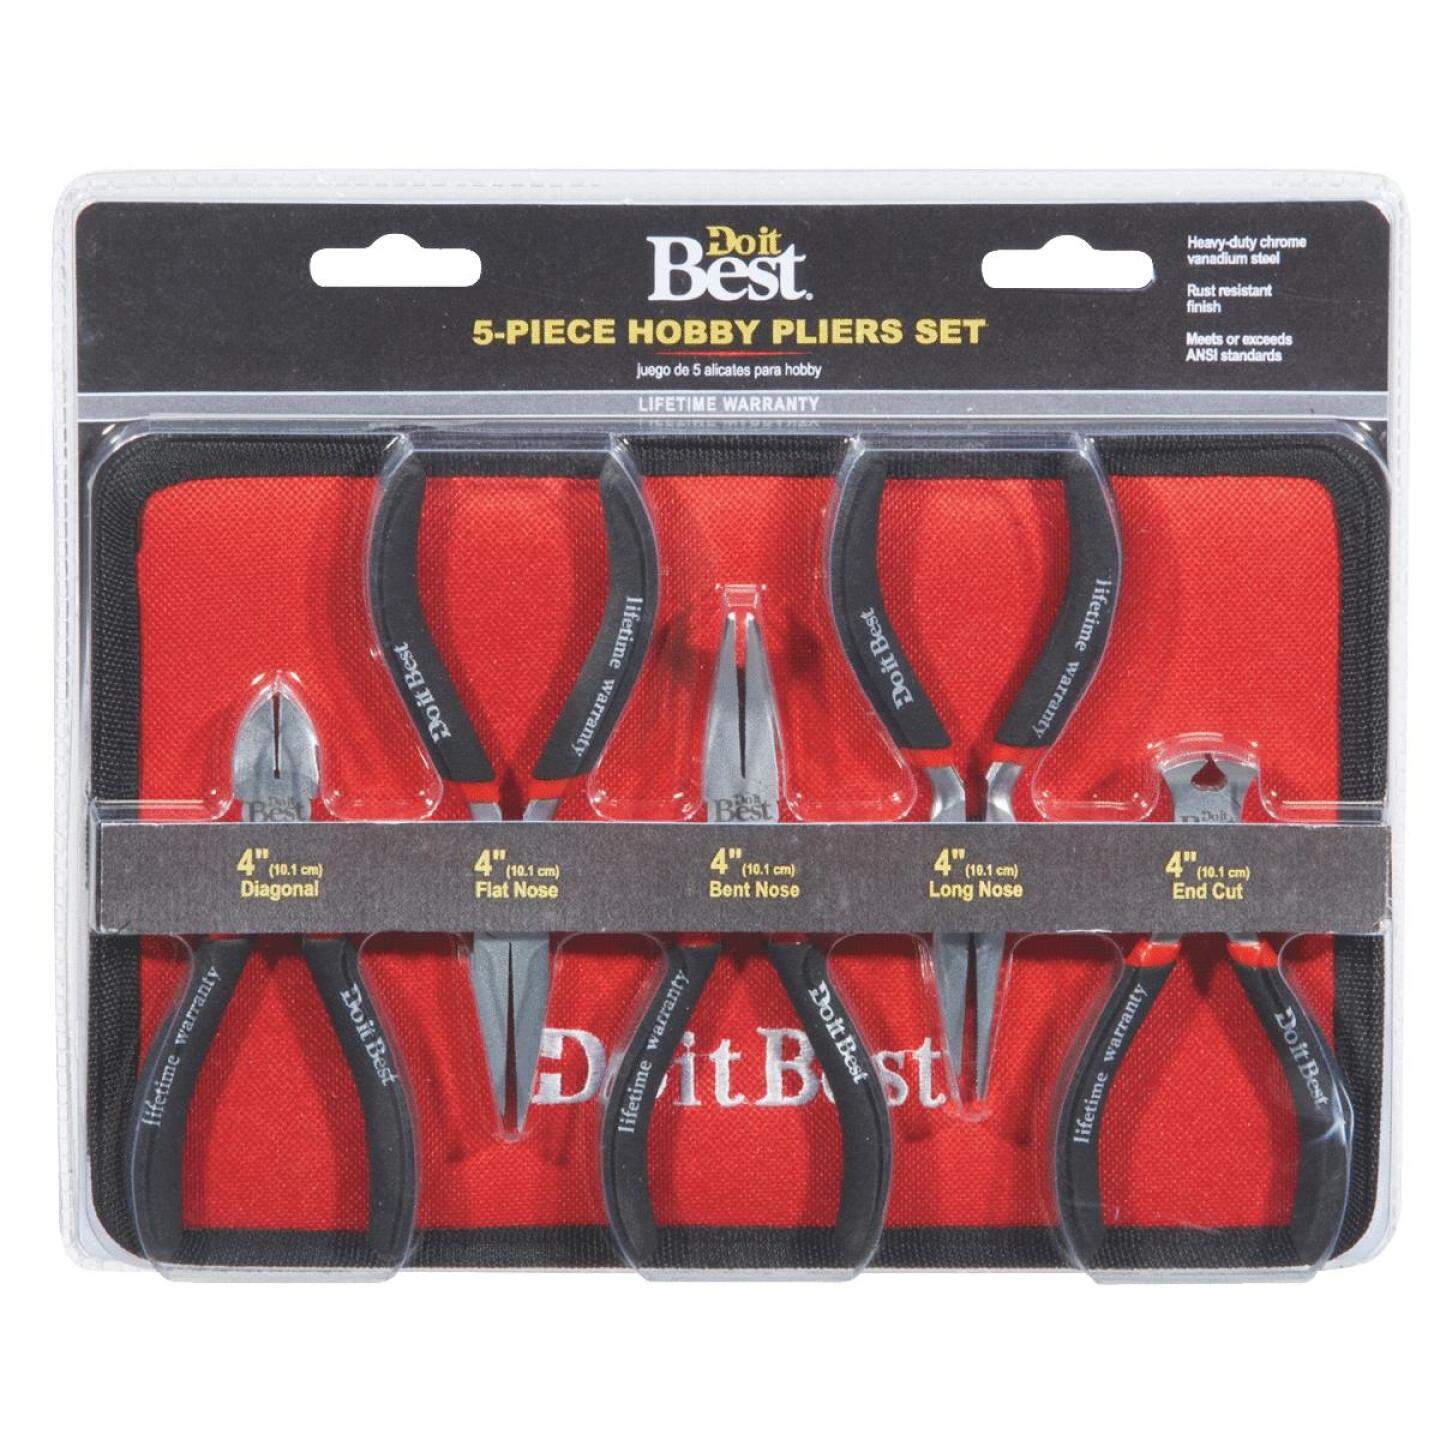 Do it Best Hobby Pliers Set (5 Piece) Image 2